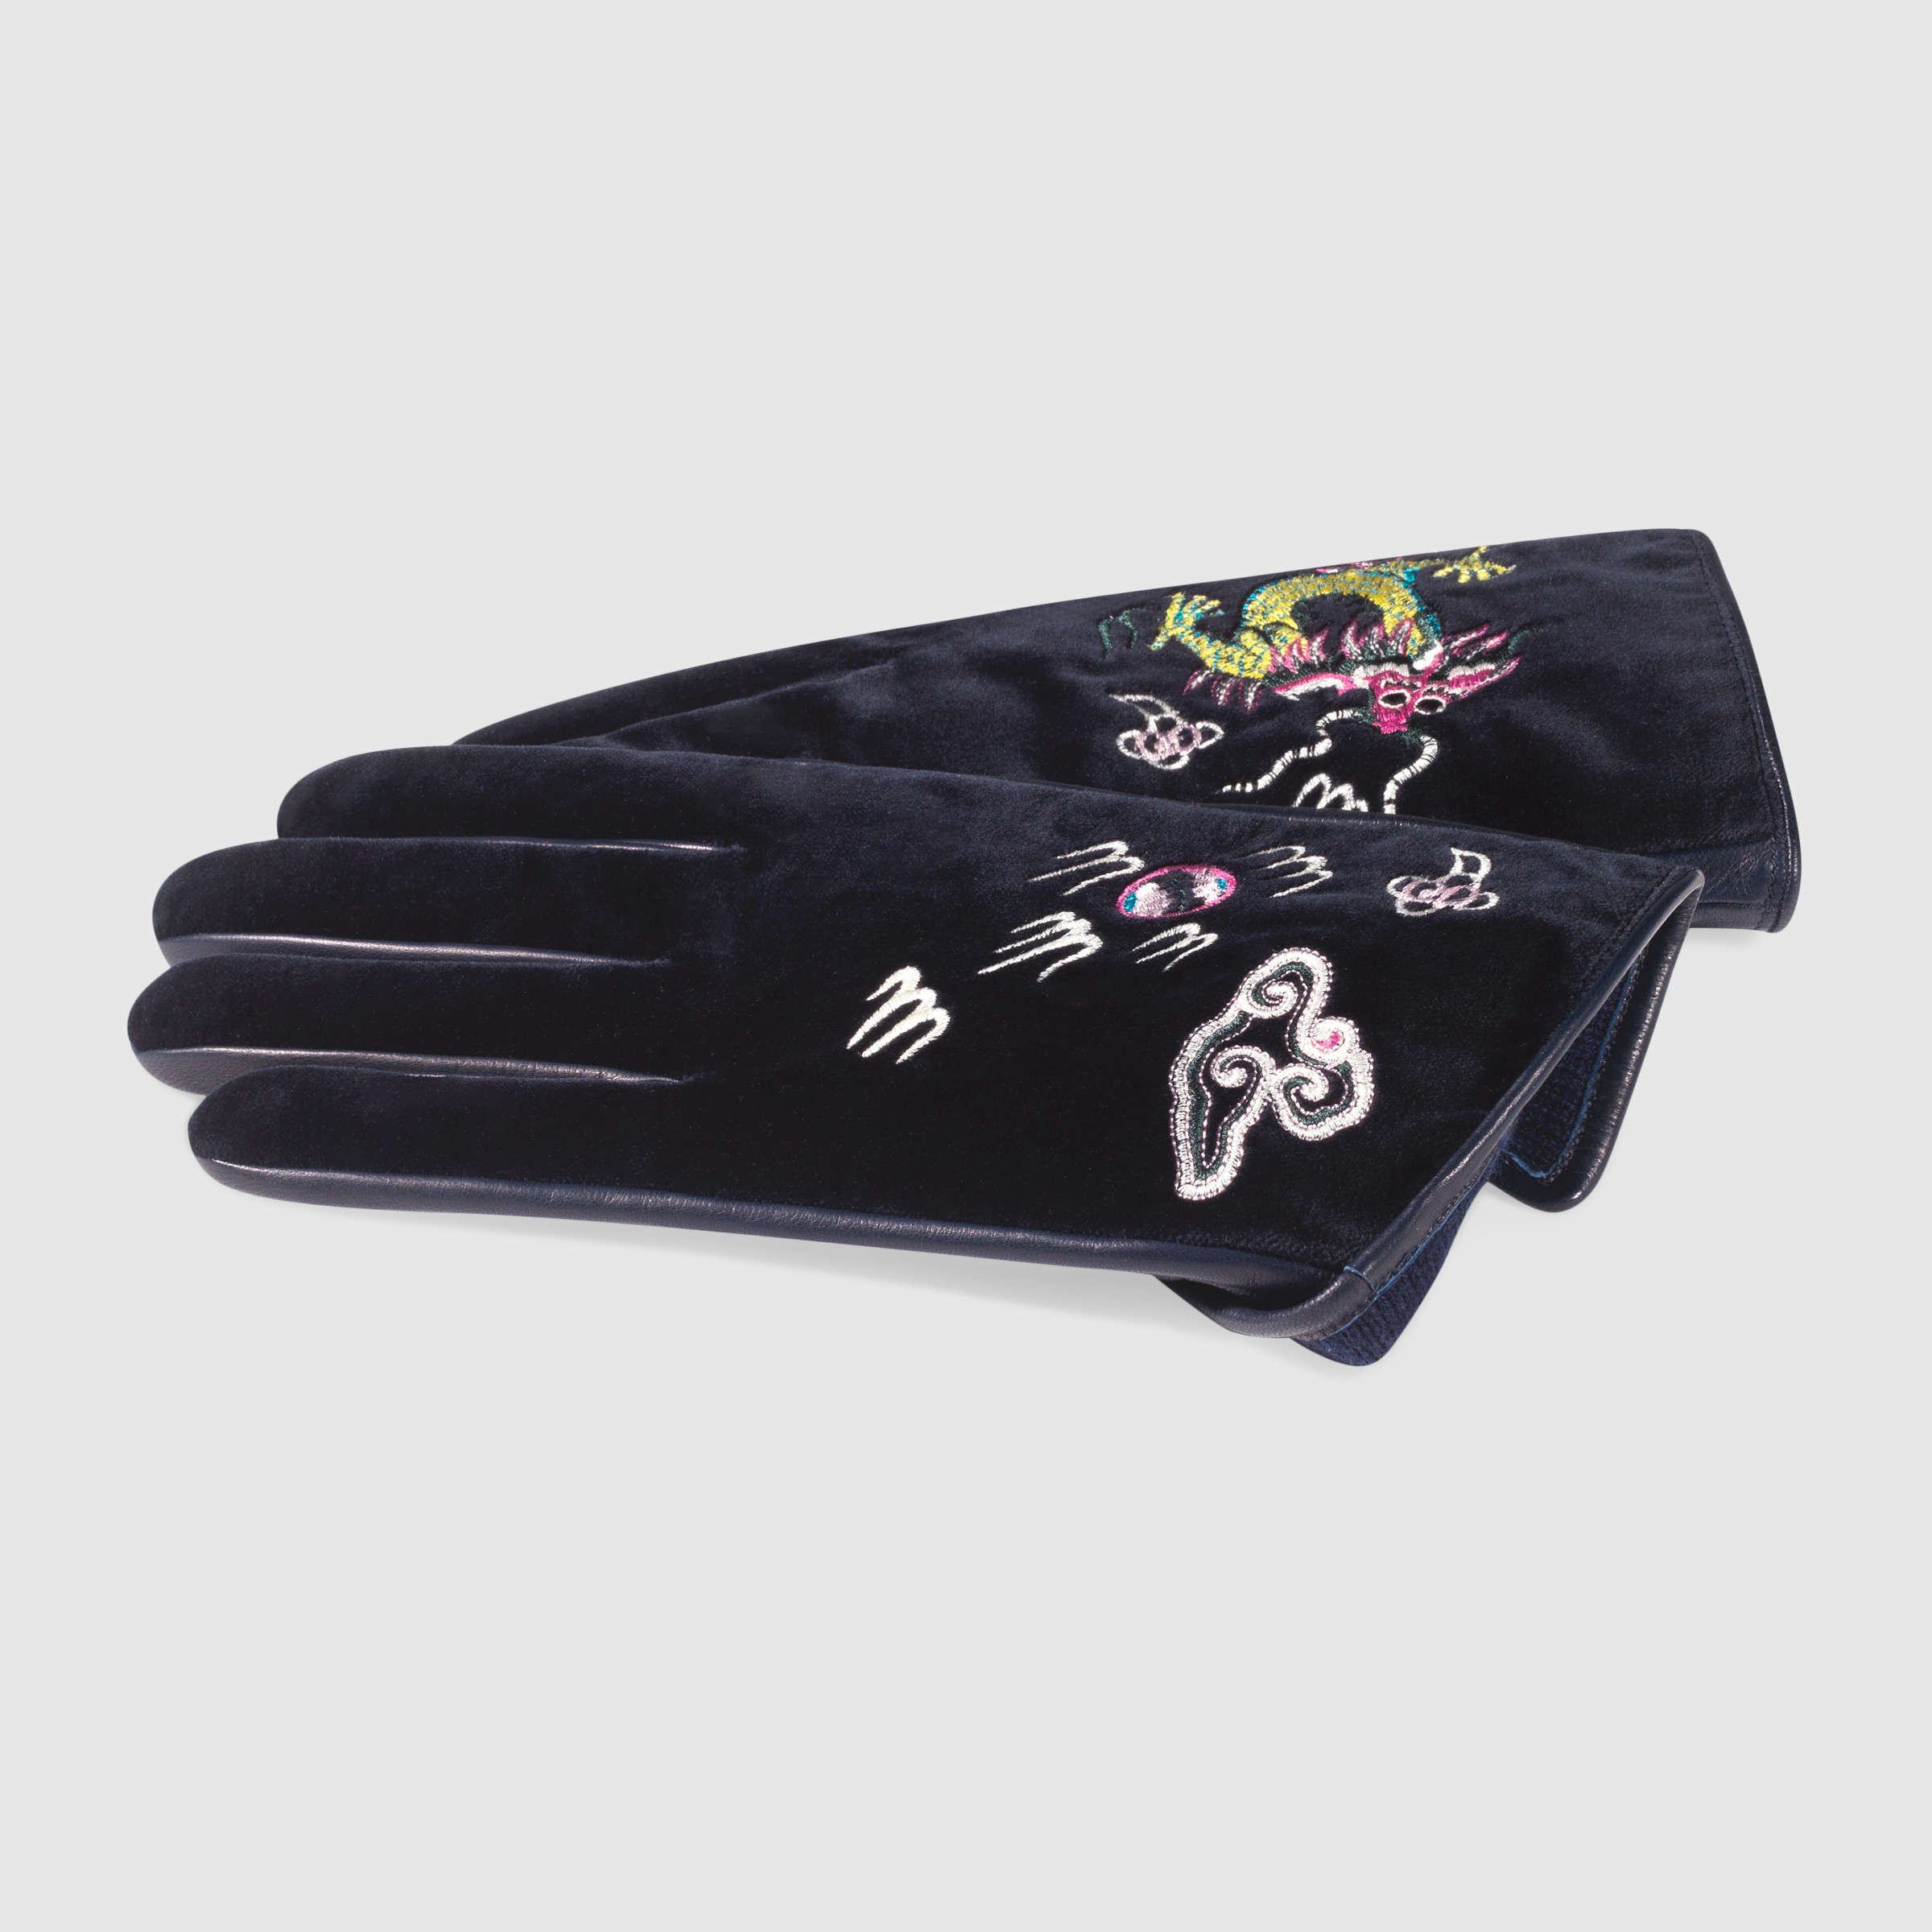 【グッチ】Velvet Gloves With Embroidery 手袋